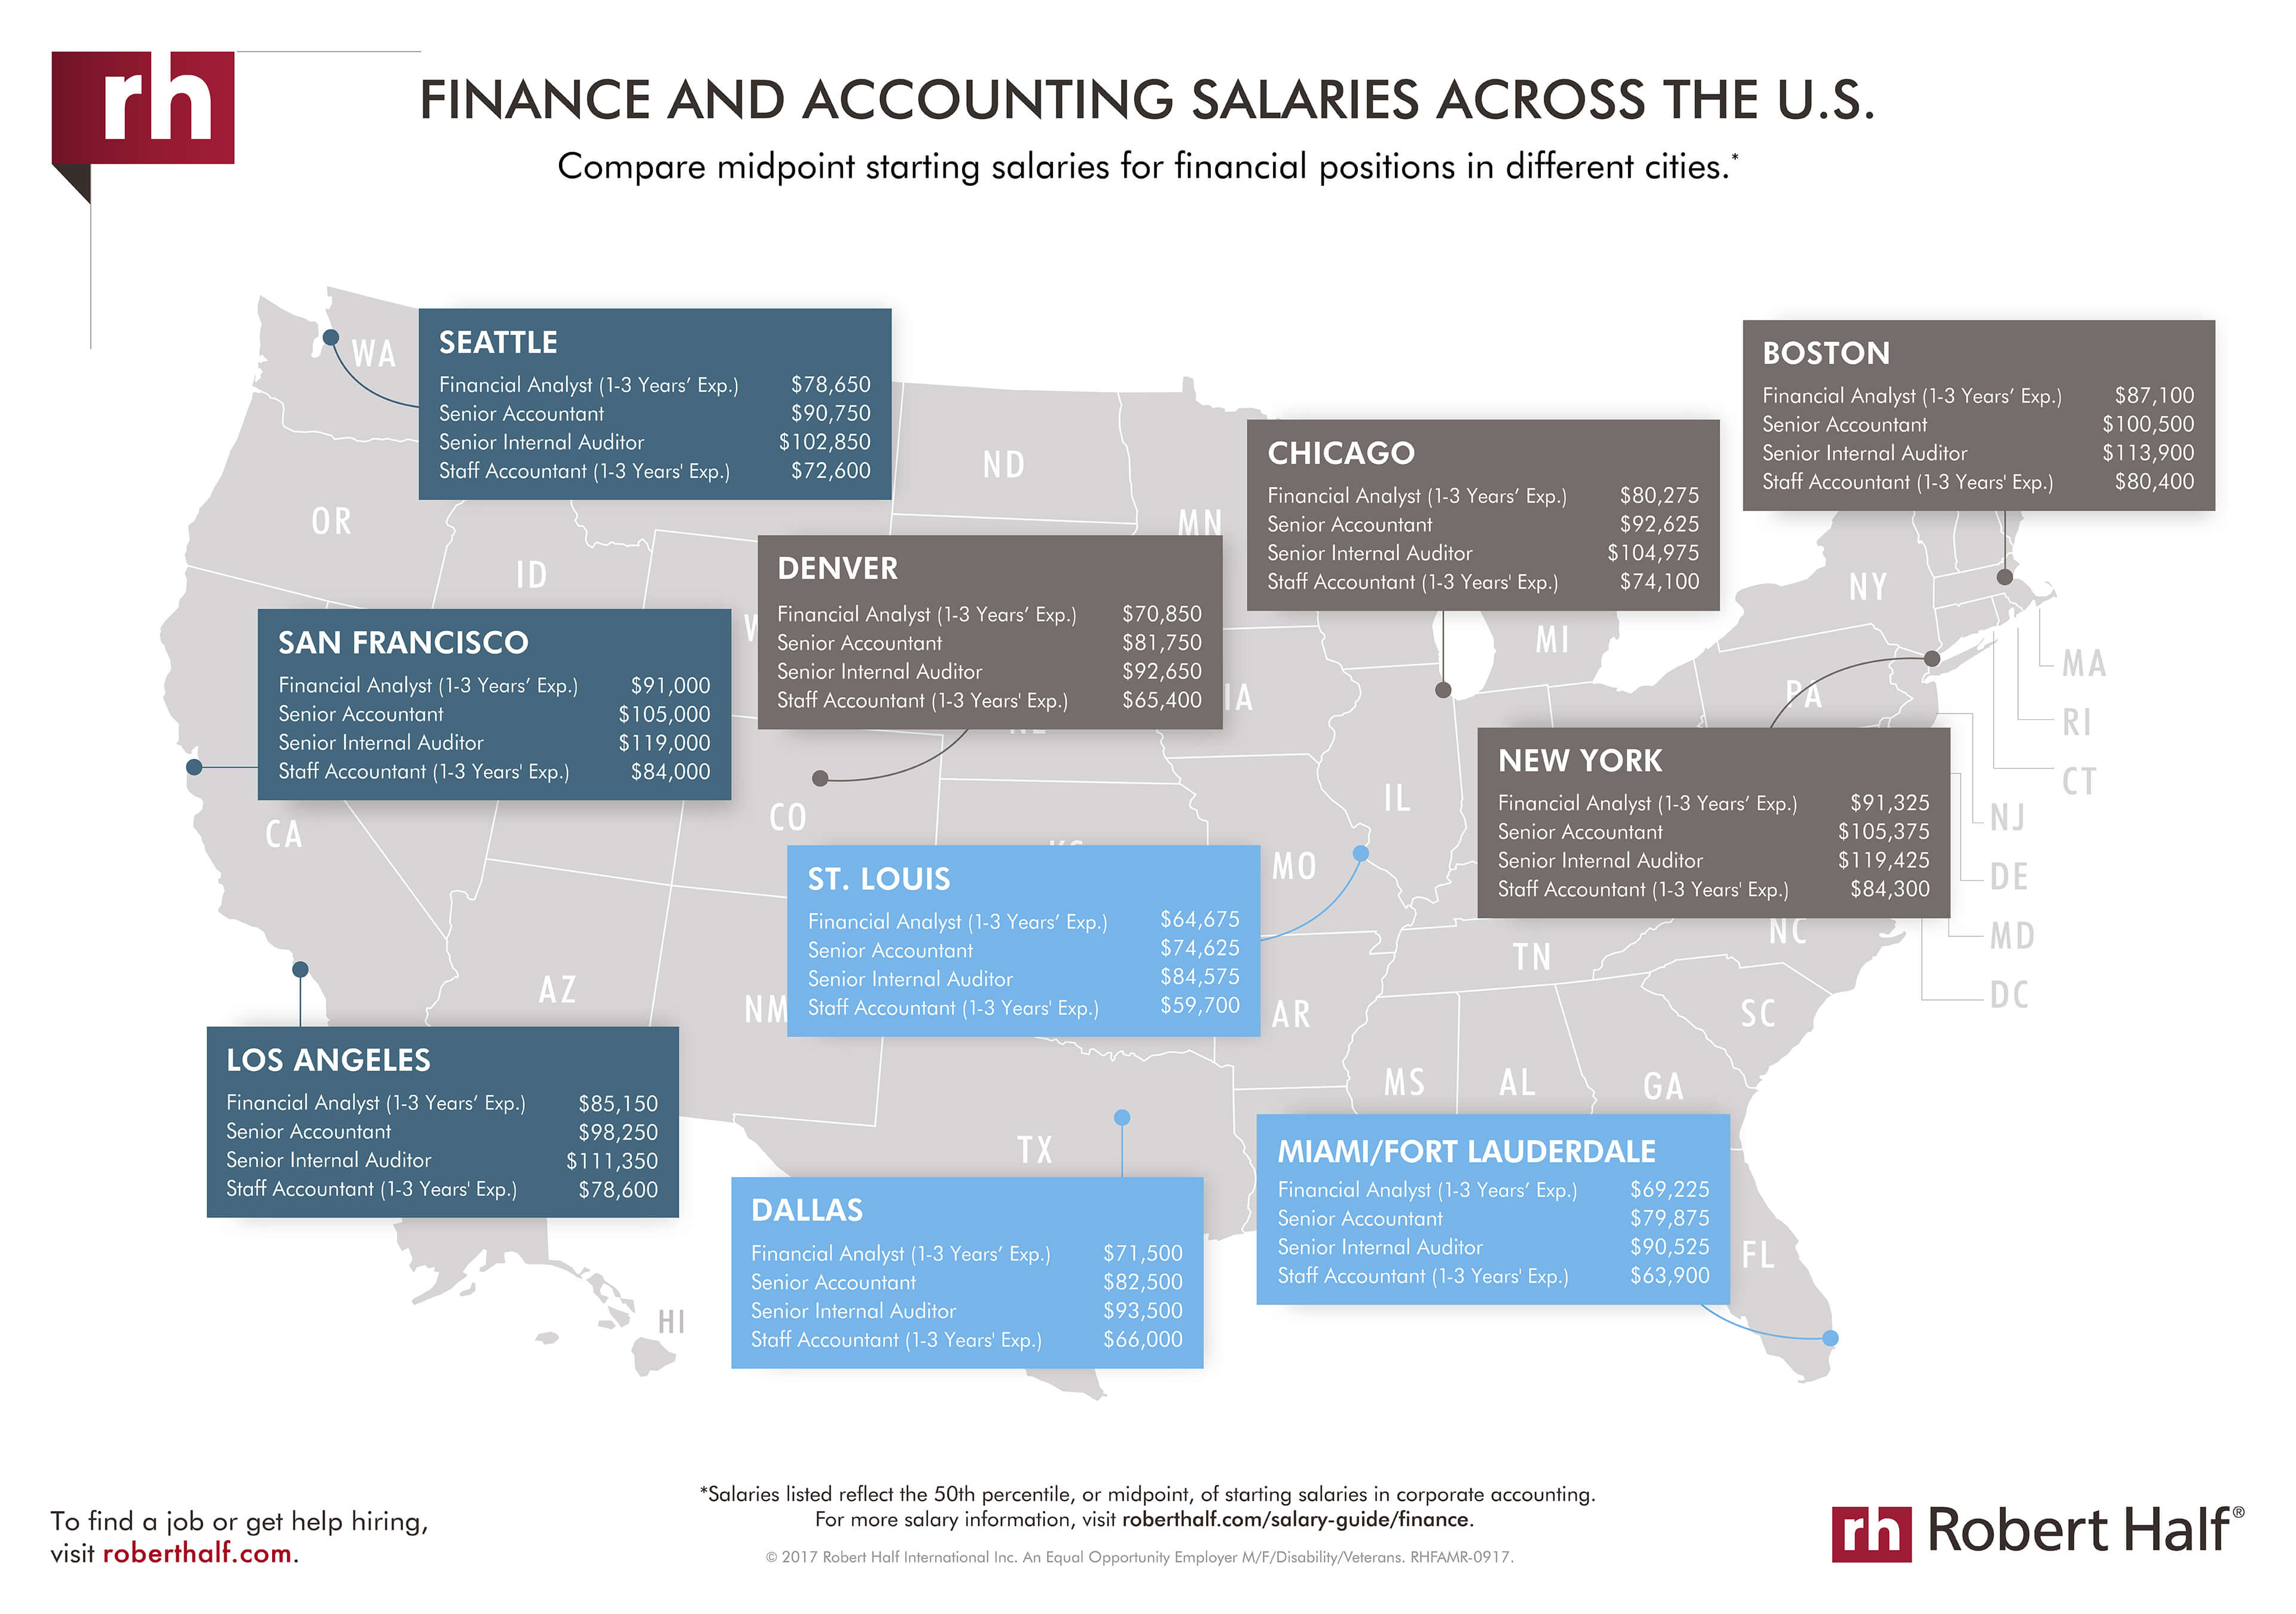 Finance And Accounting Salaries Across The U.S. Infographic Thumbnail